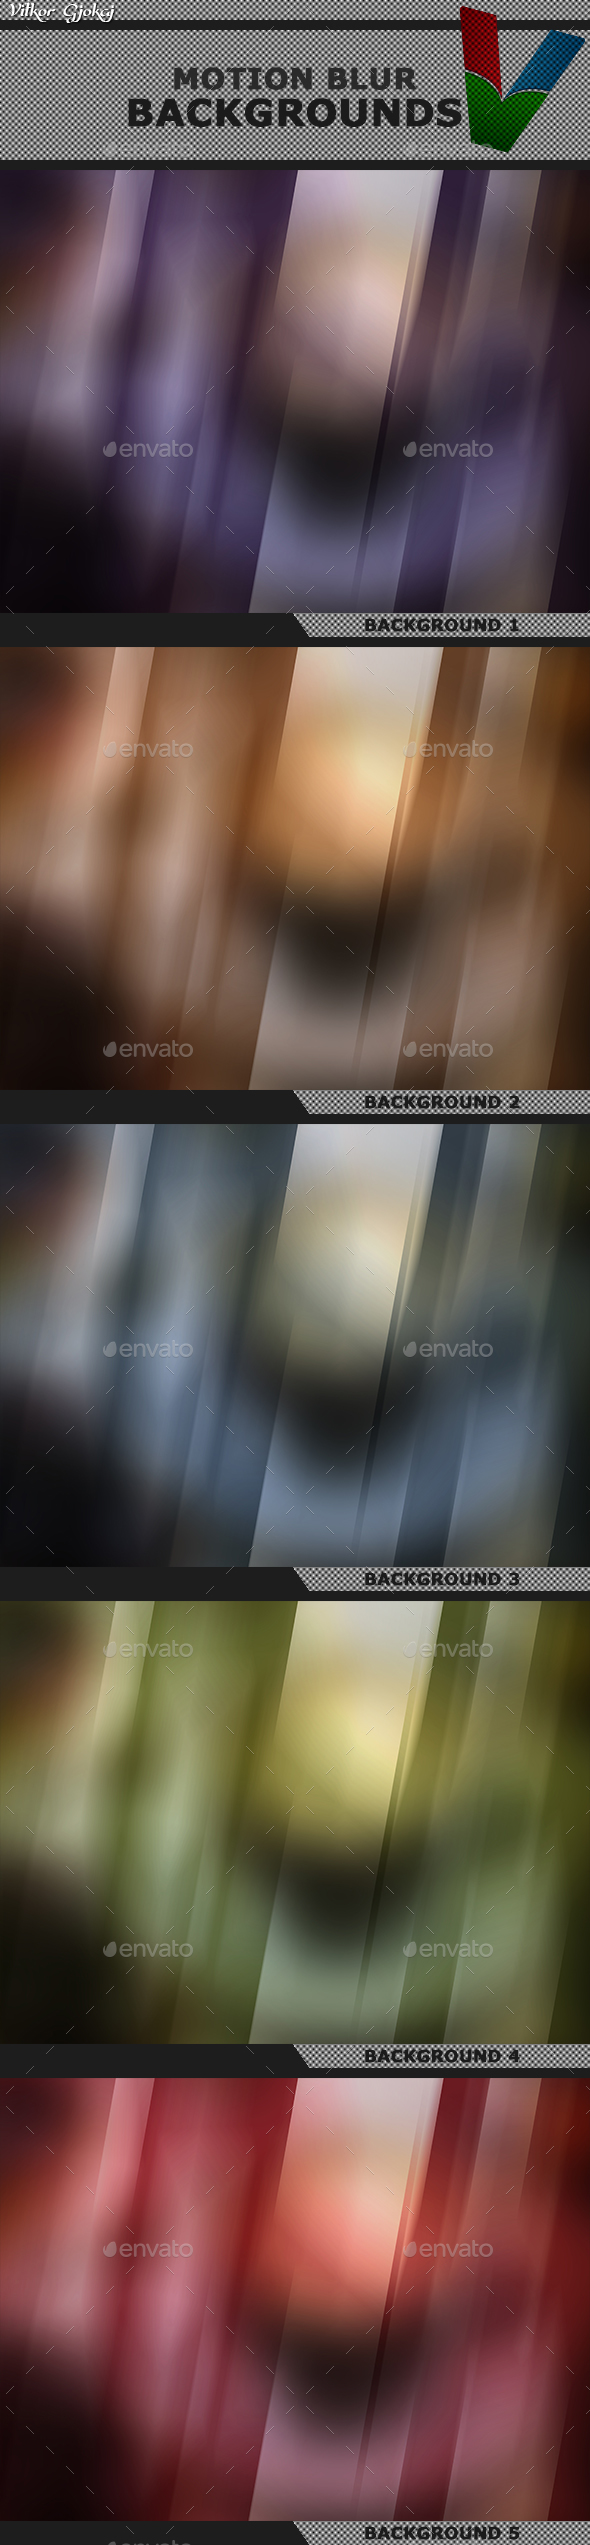 Motion Blur Backgrounds 2 - Abstract Backgrounds